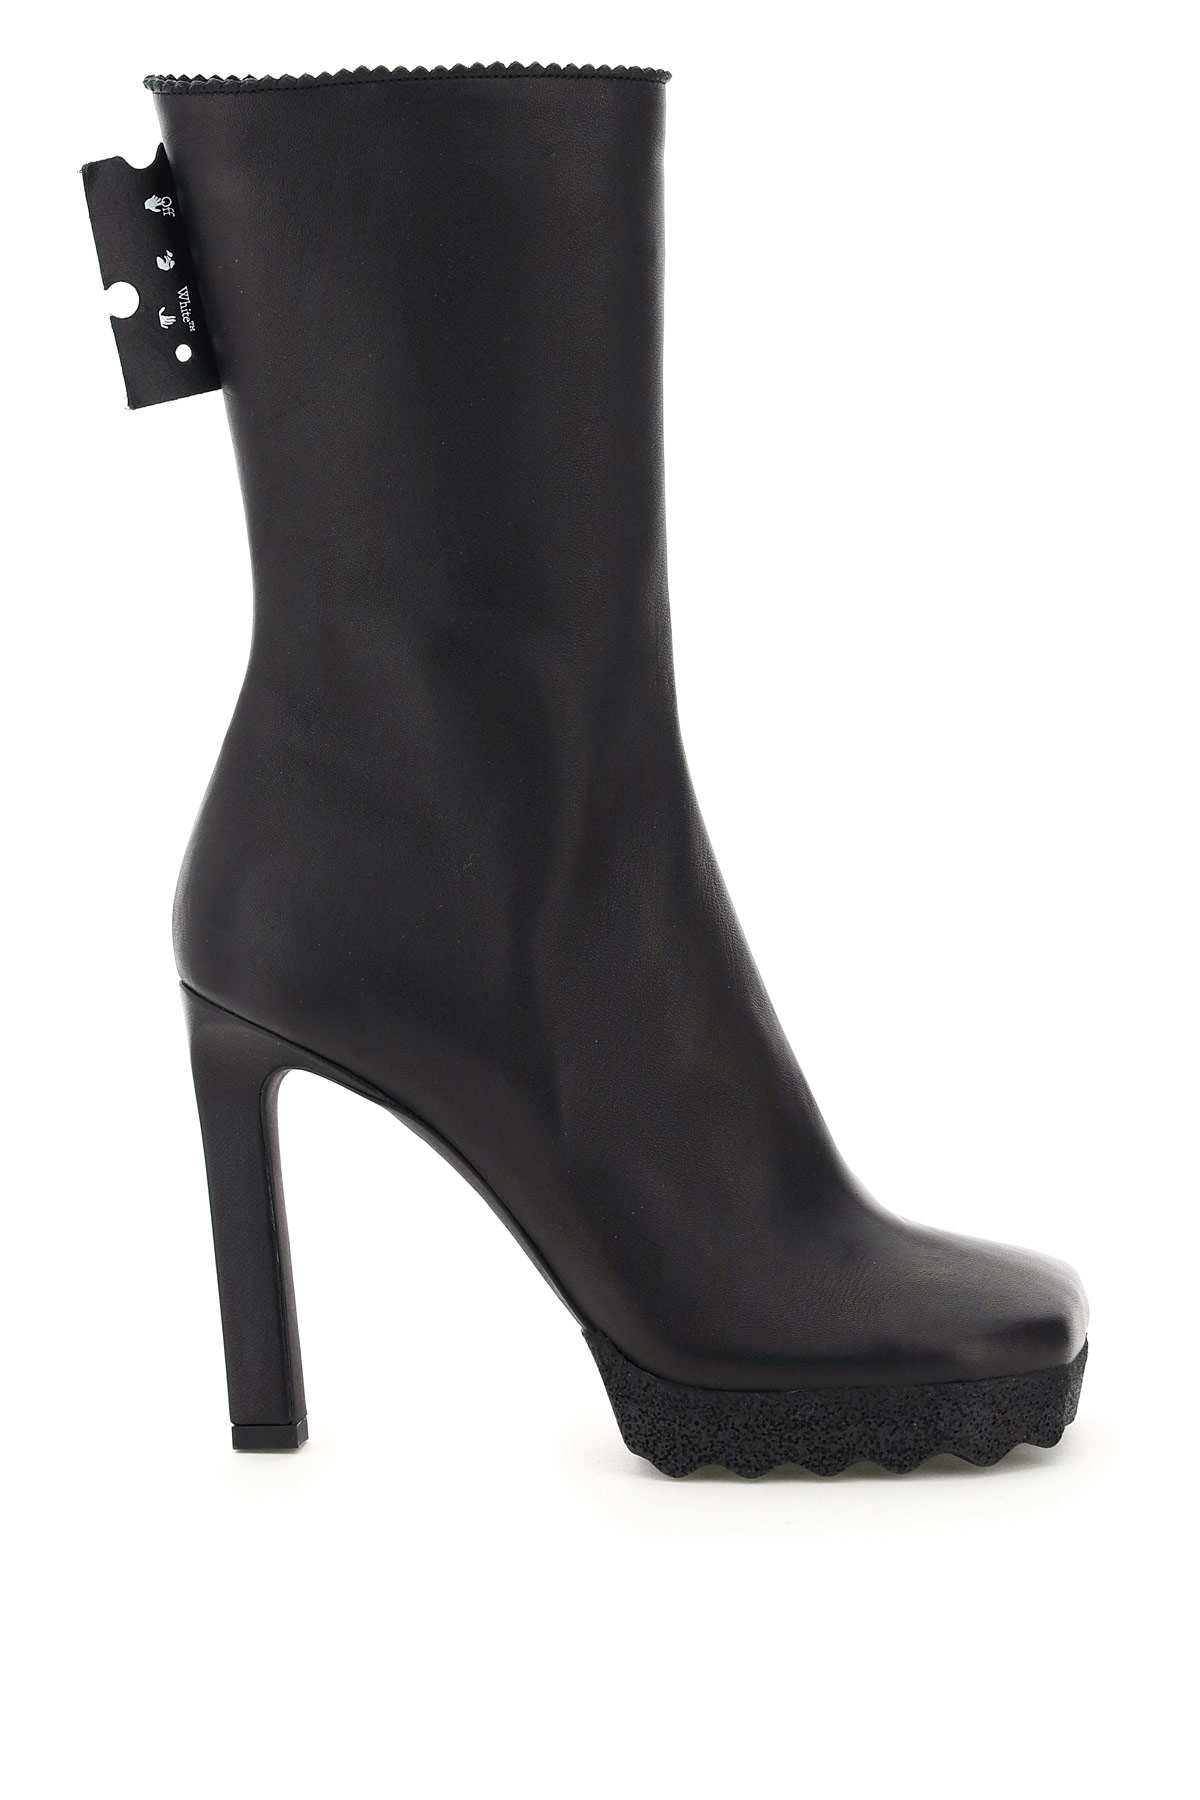 Off-White Nappa Boots 36 Black Leather